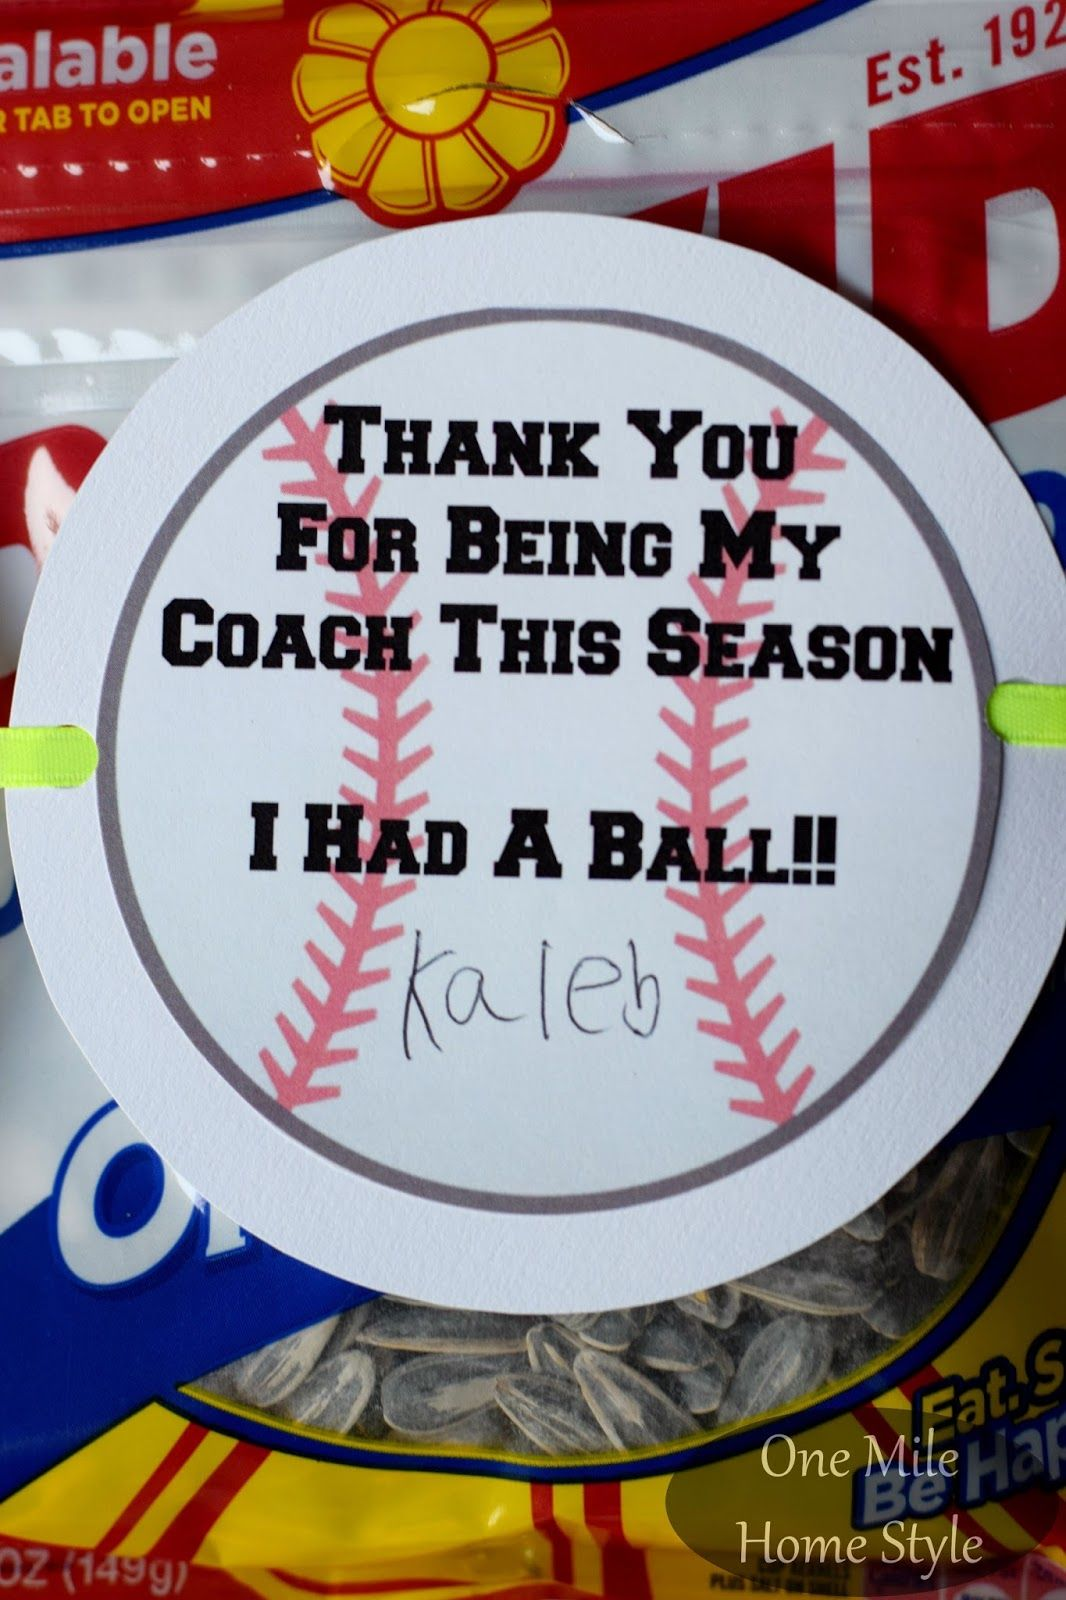 End of the Baseball Season Coach's Gift with Printable Gift Tag - One Mile Home Style